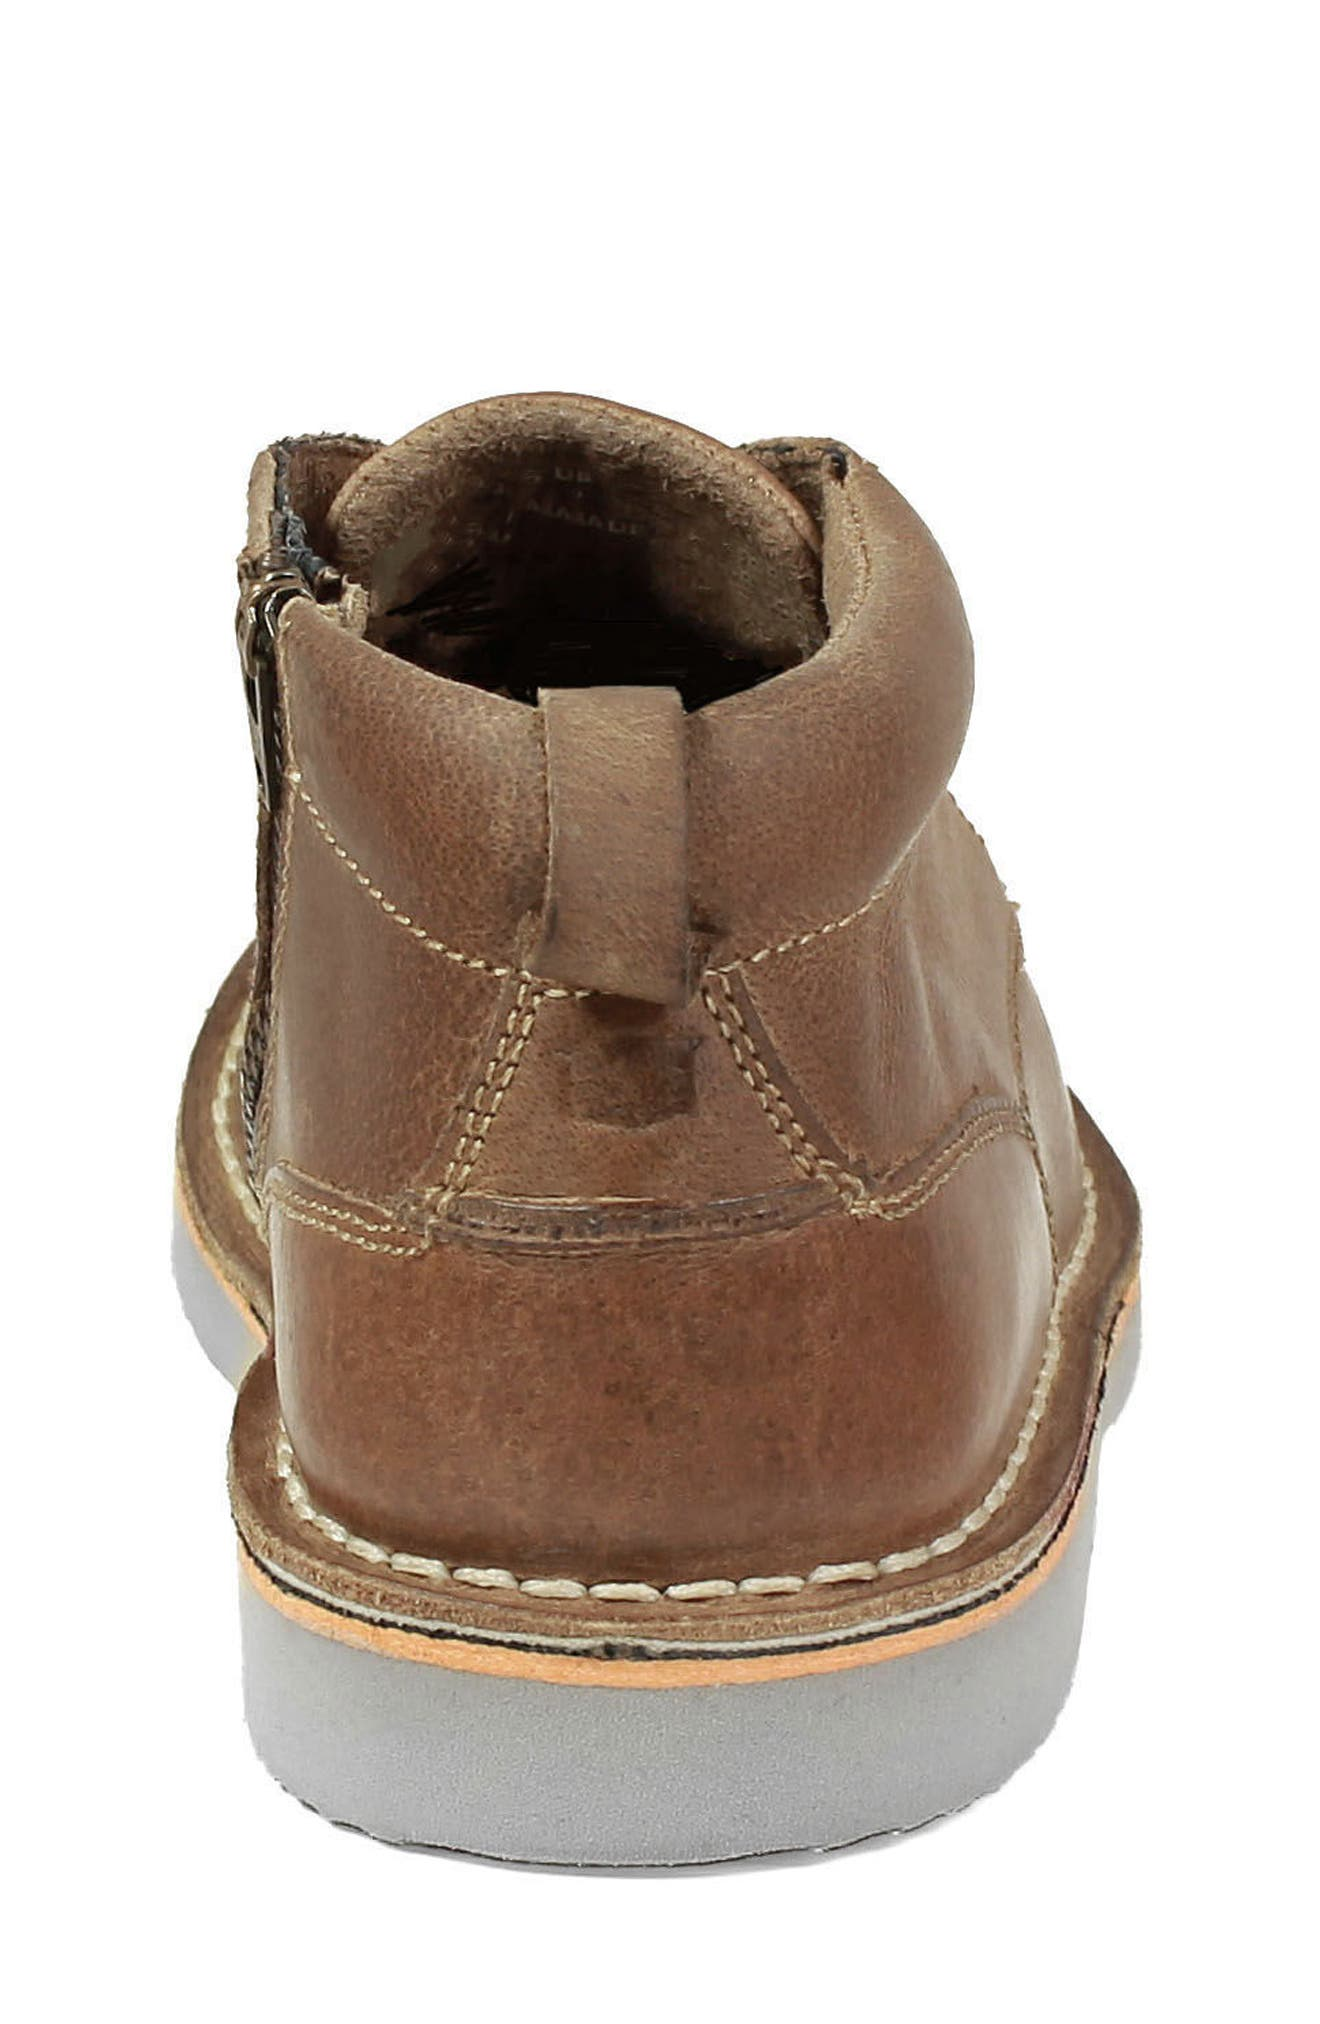 Chukka Boot,                             Alternate thumbnail 7, color,                             BROWN CRAZY HORSE LEATHER